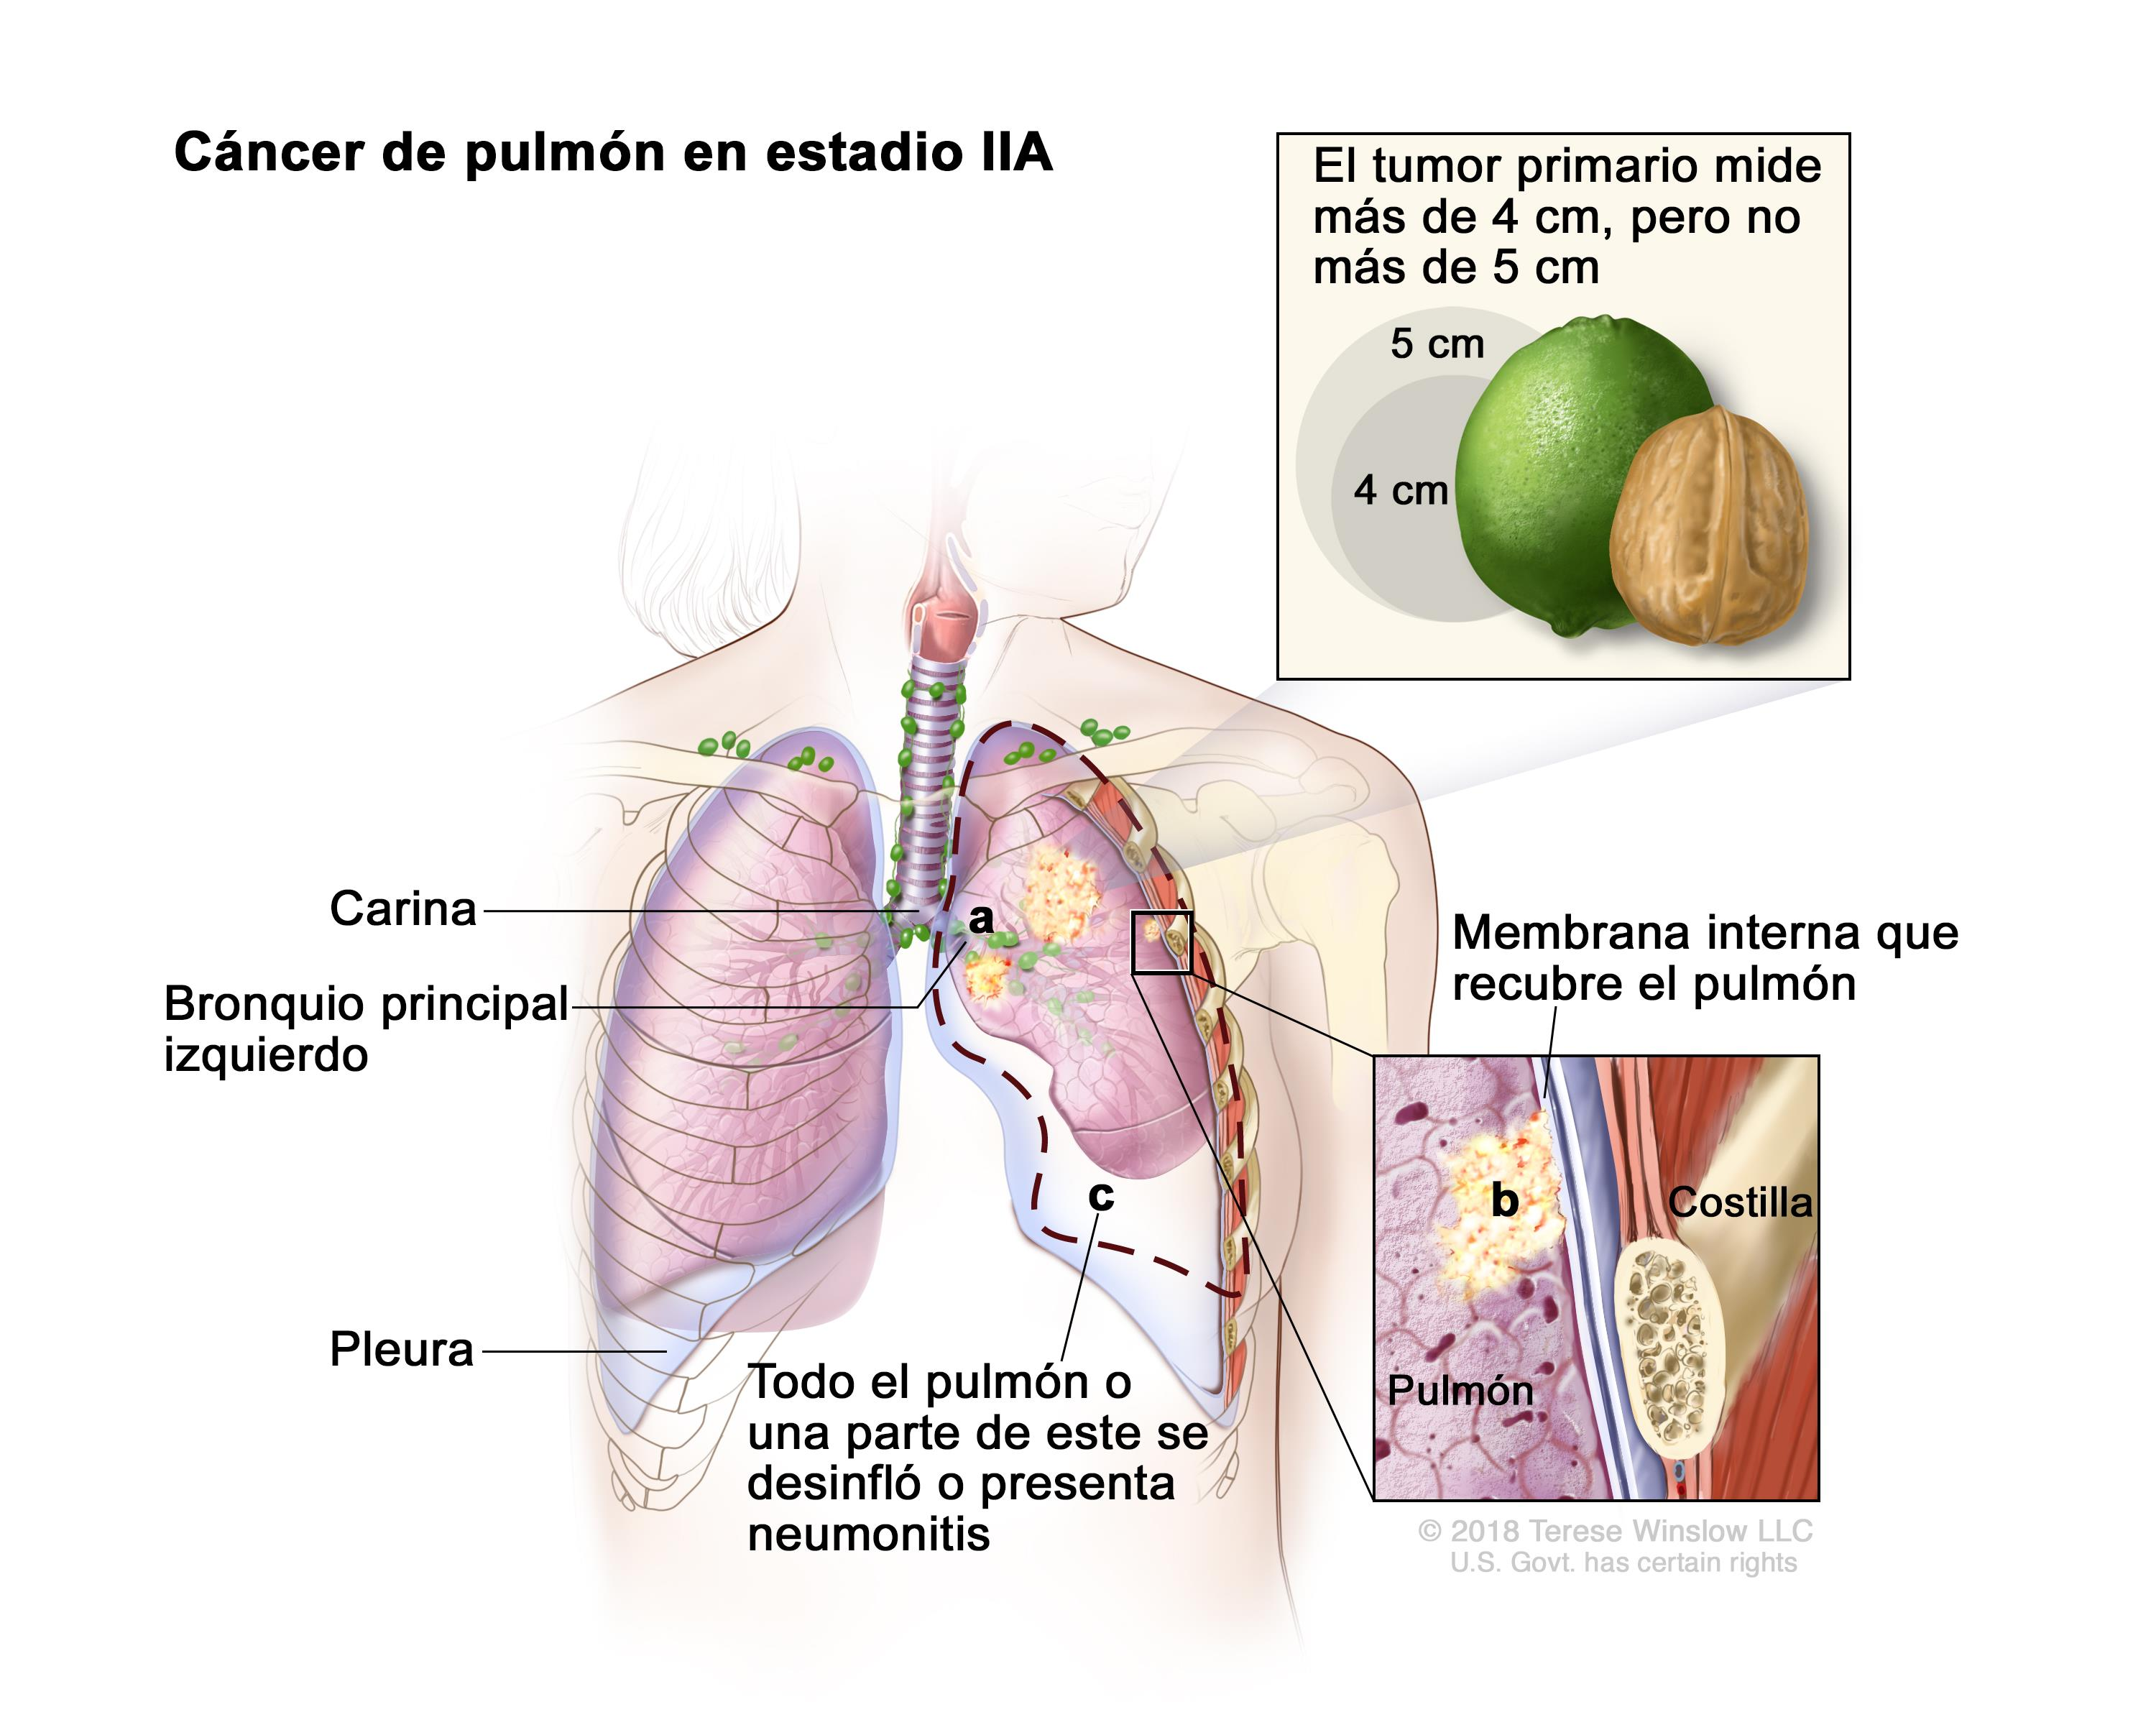 sintomas del cancer de pulmon pdf